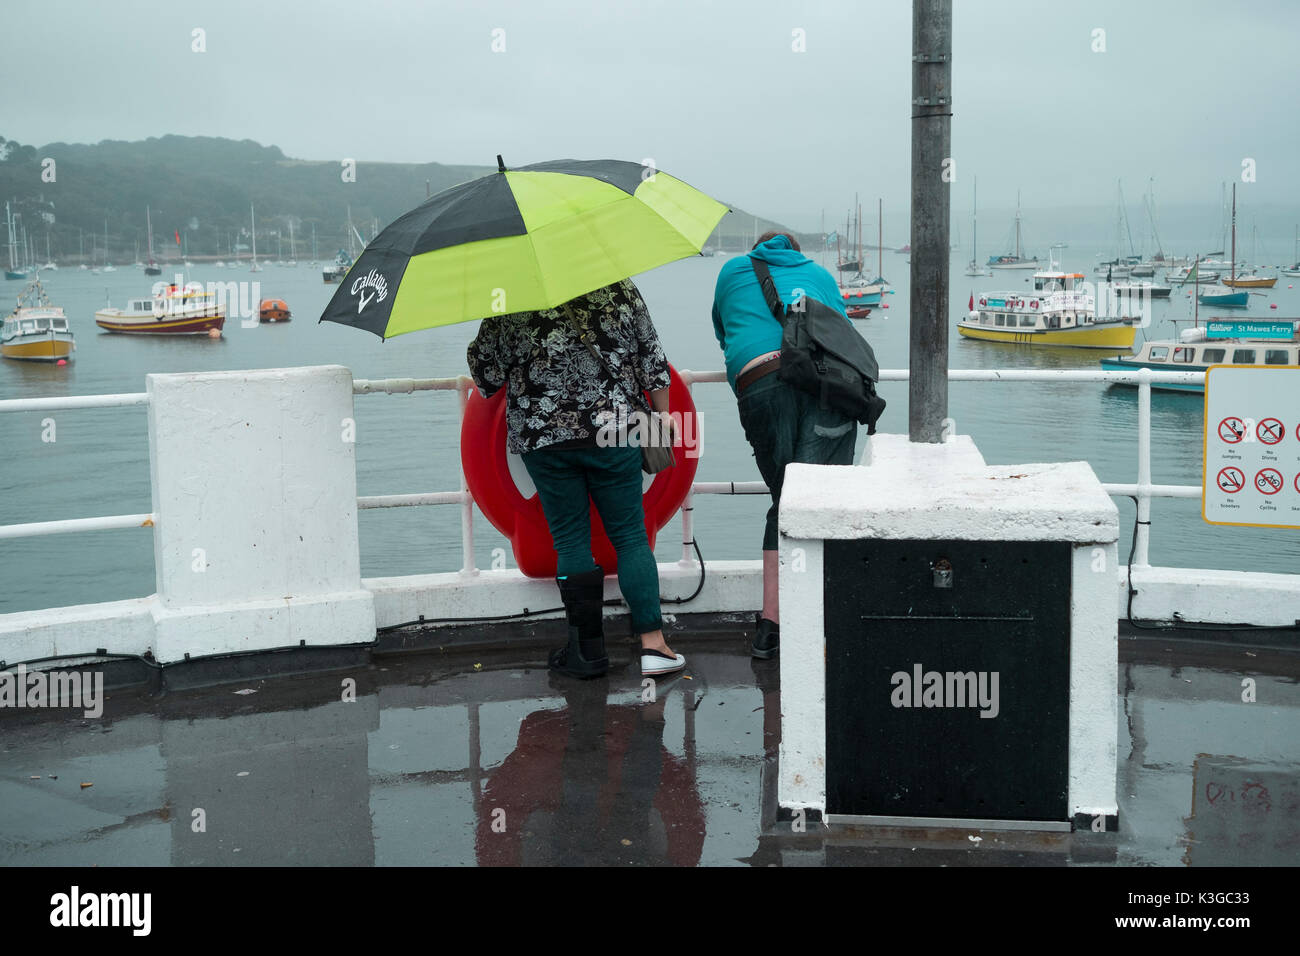 Falmouth, UK. 03rd Sep, 2017. A couple enjoy a wet walk along the Prince of Wales Pier, Falmouth Cornwall under Stock Photo